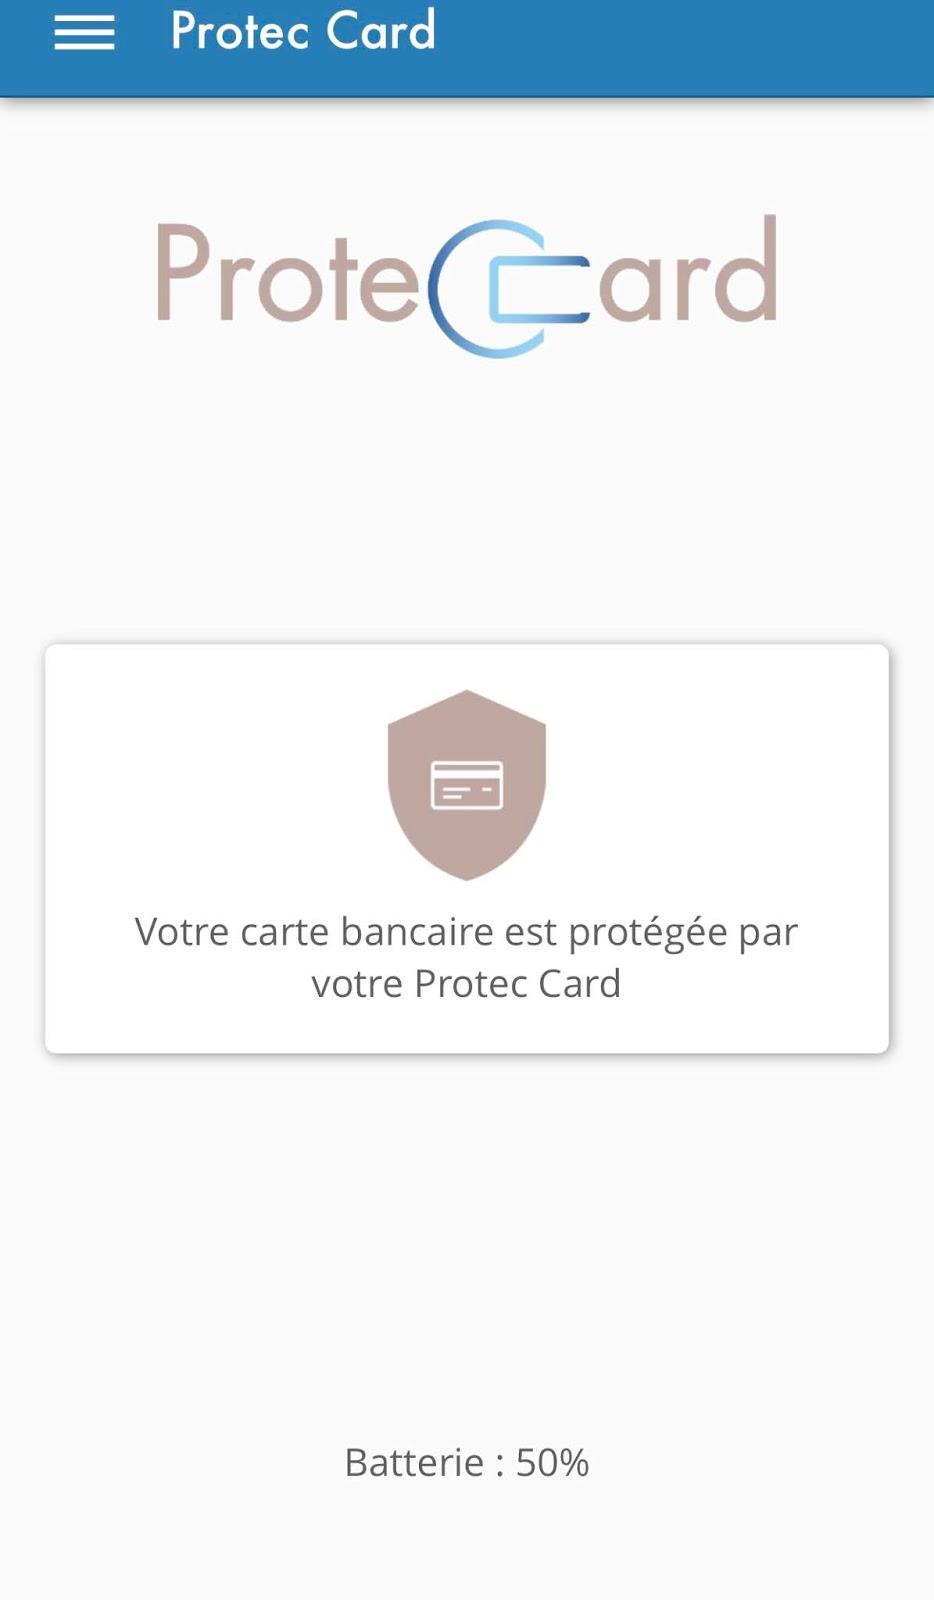 proteccard, protec.card, protection carte bancaire, protection données bancaires, protection bancaire, opposition, opposition carte bancaire, carte bancaire,